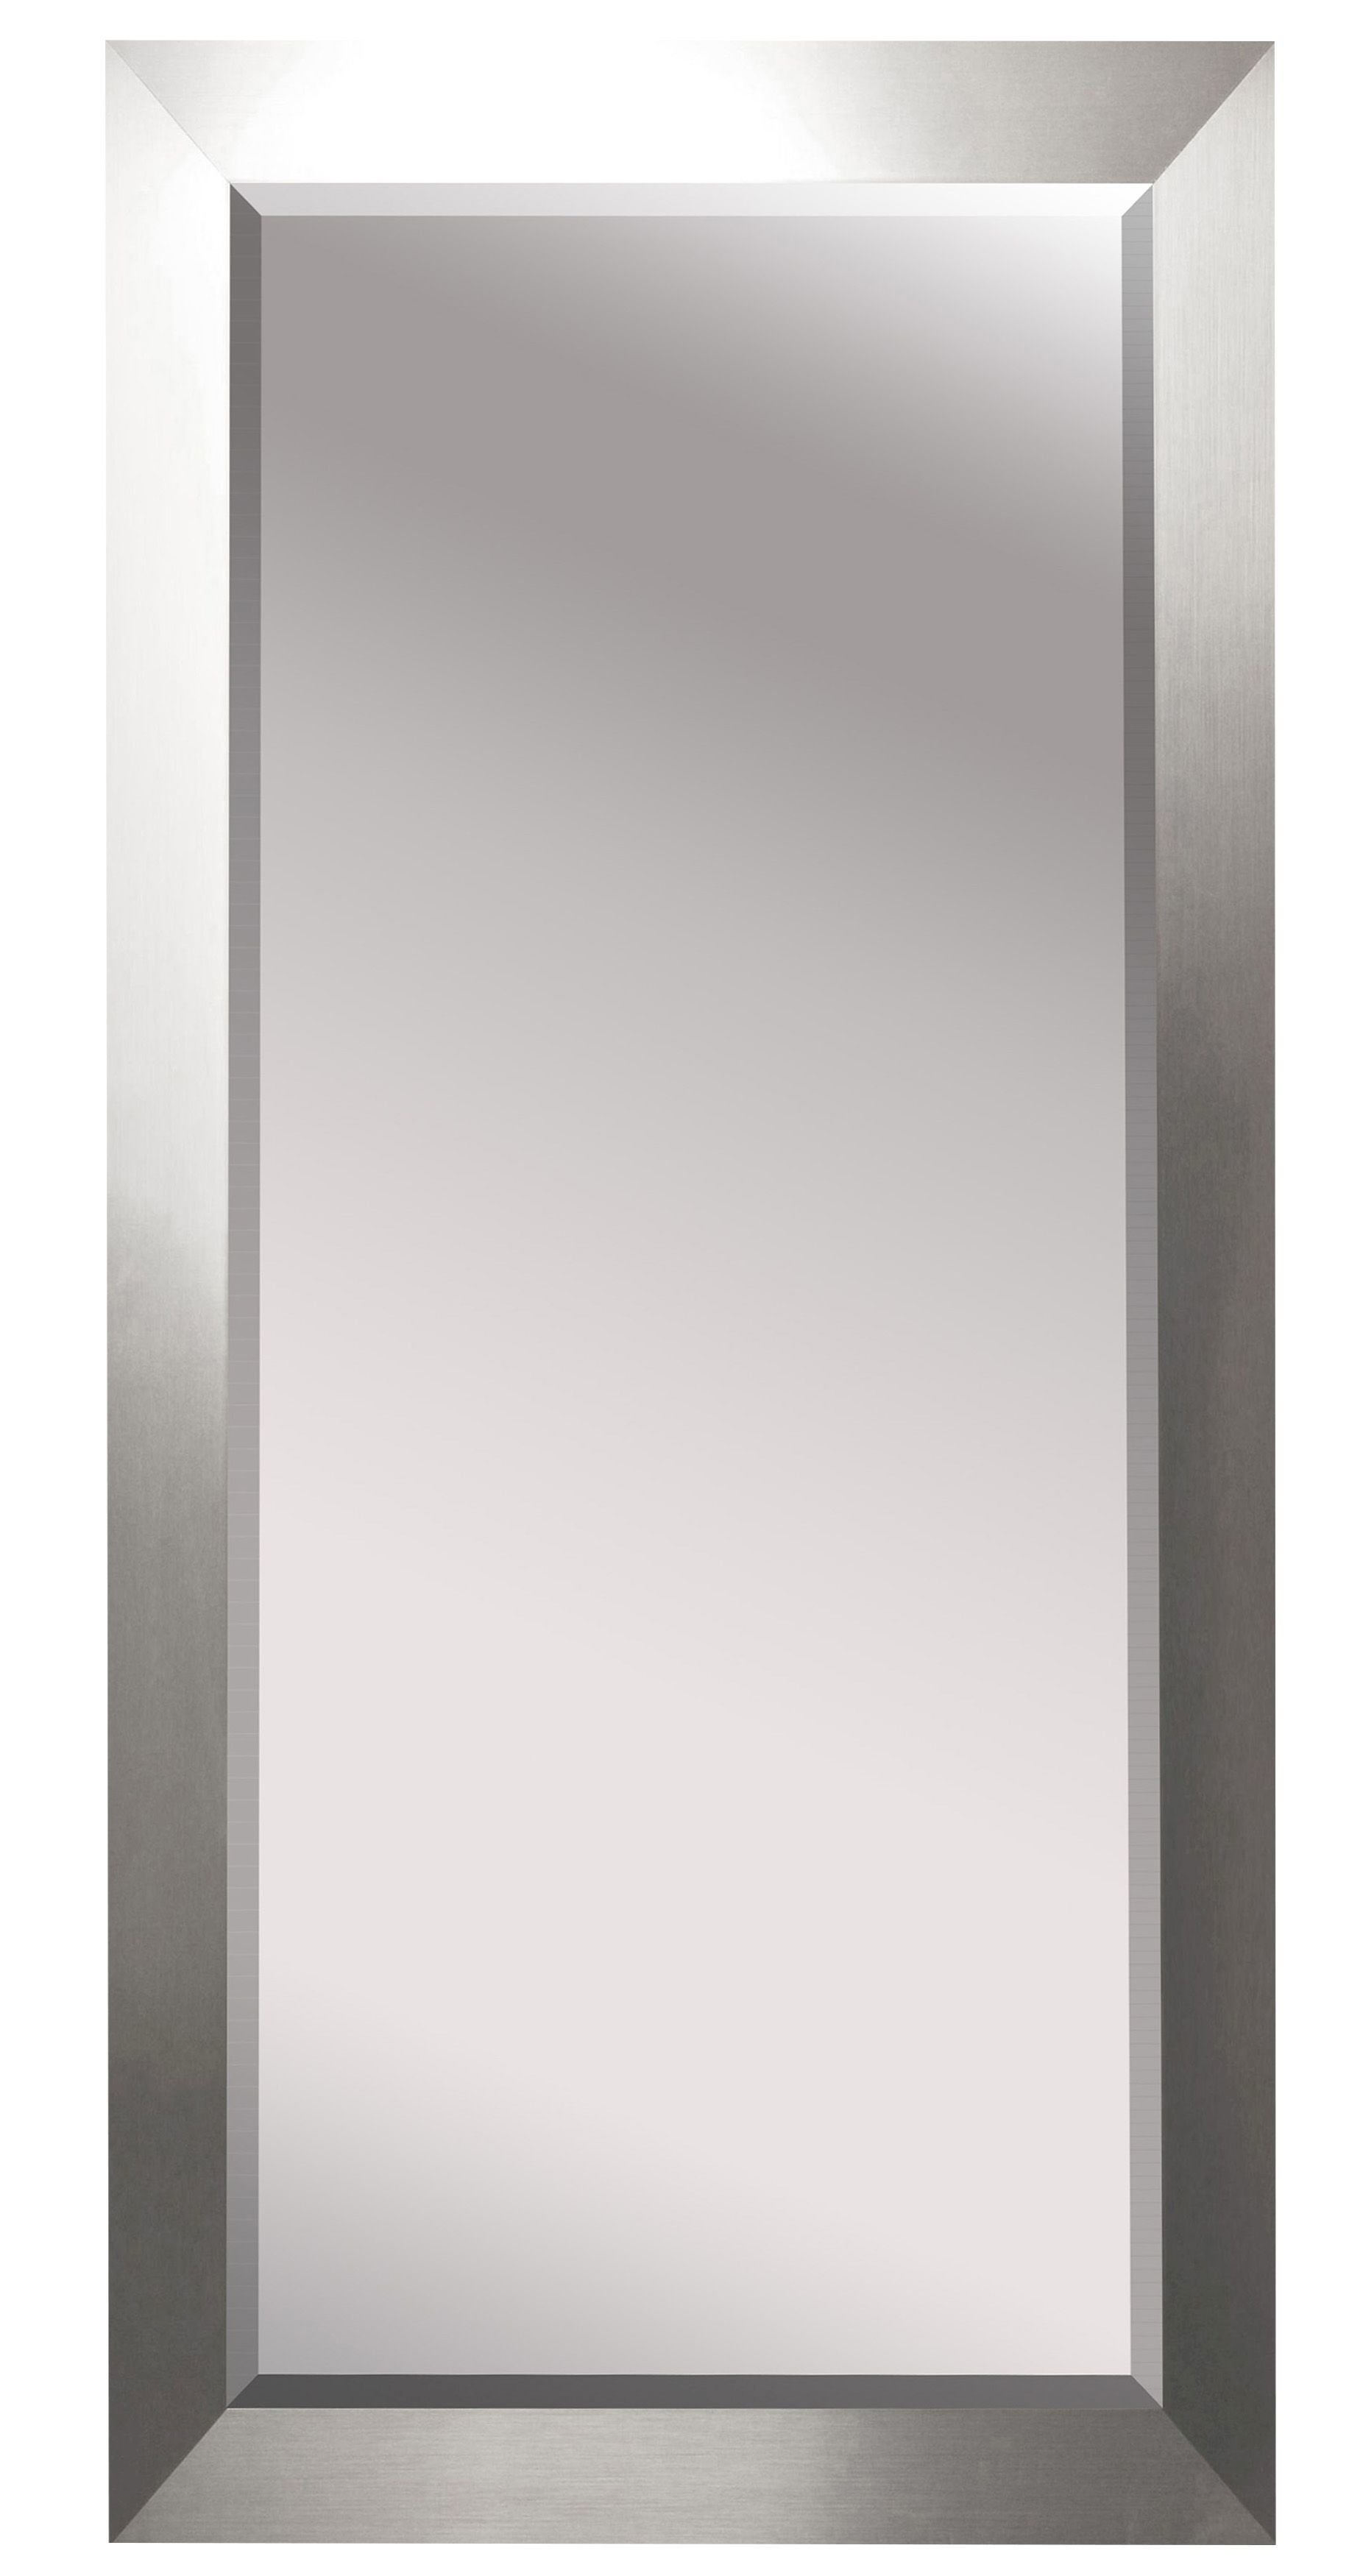 Bernice Beveled Silver Wall Full Length Mirror For Dalessio Wide Tall Full Length Mirrors (View 4 of 30)